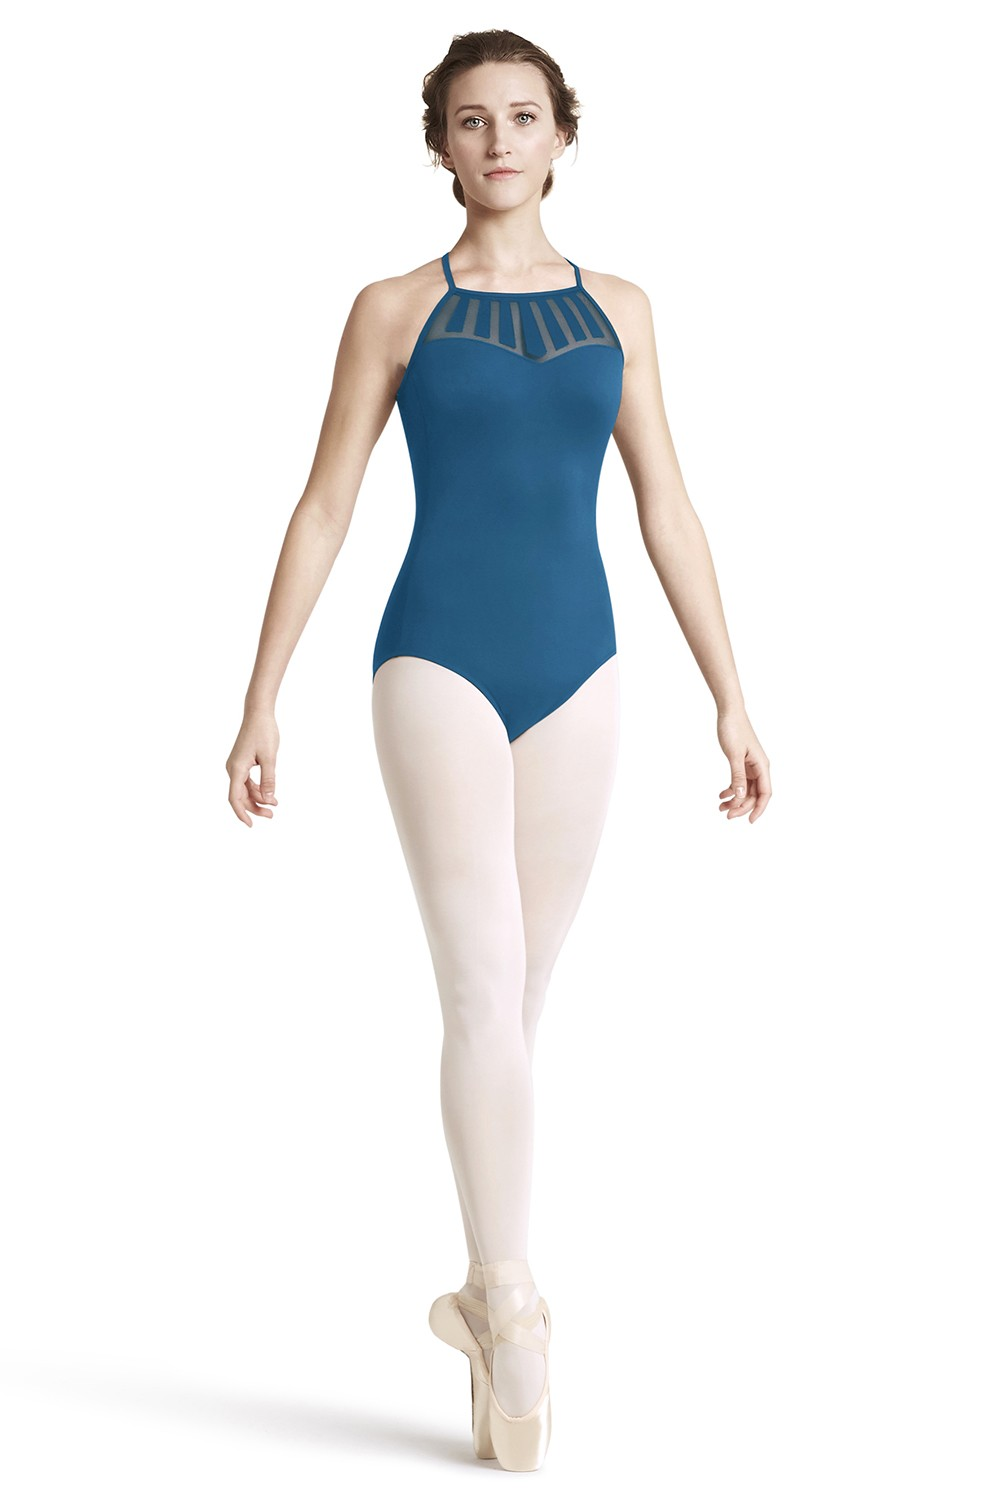 Erawan Women's Dance Leotards